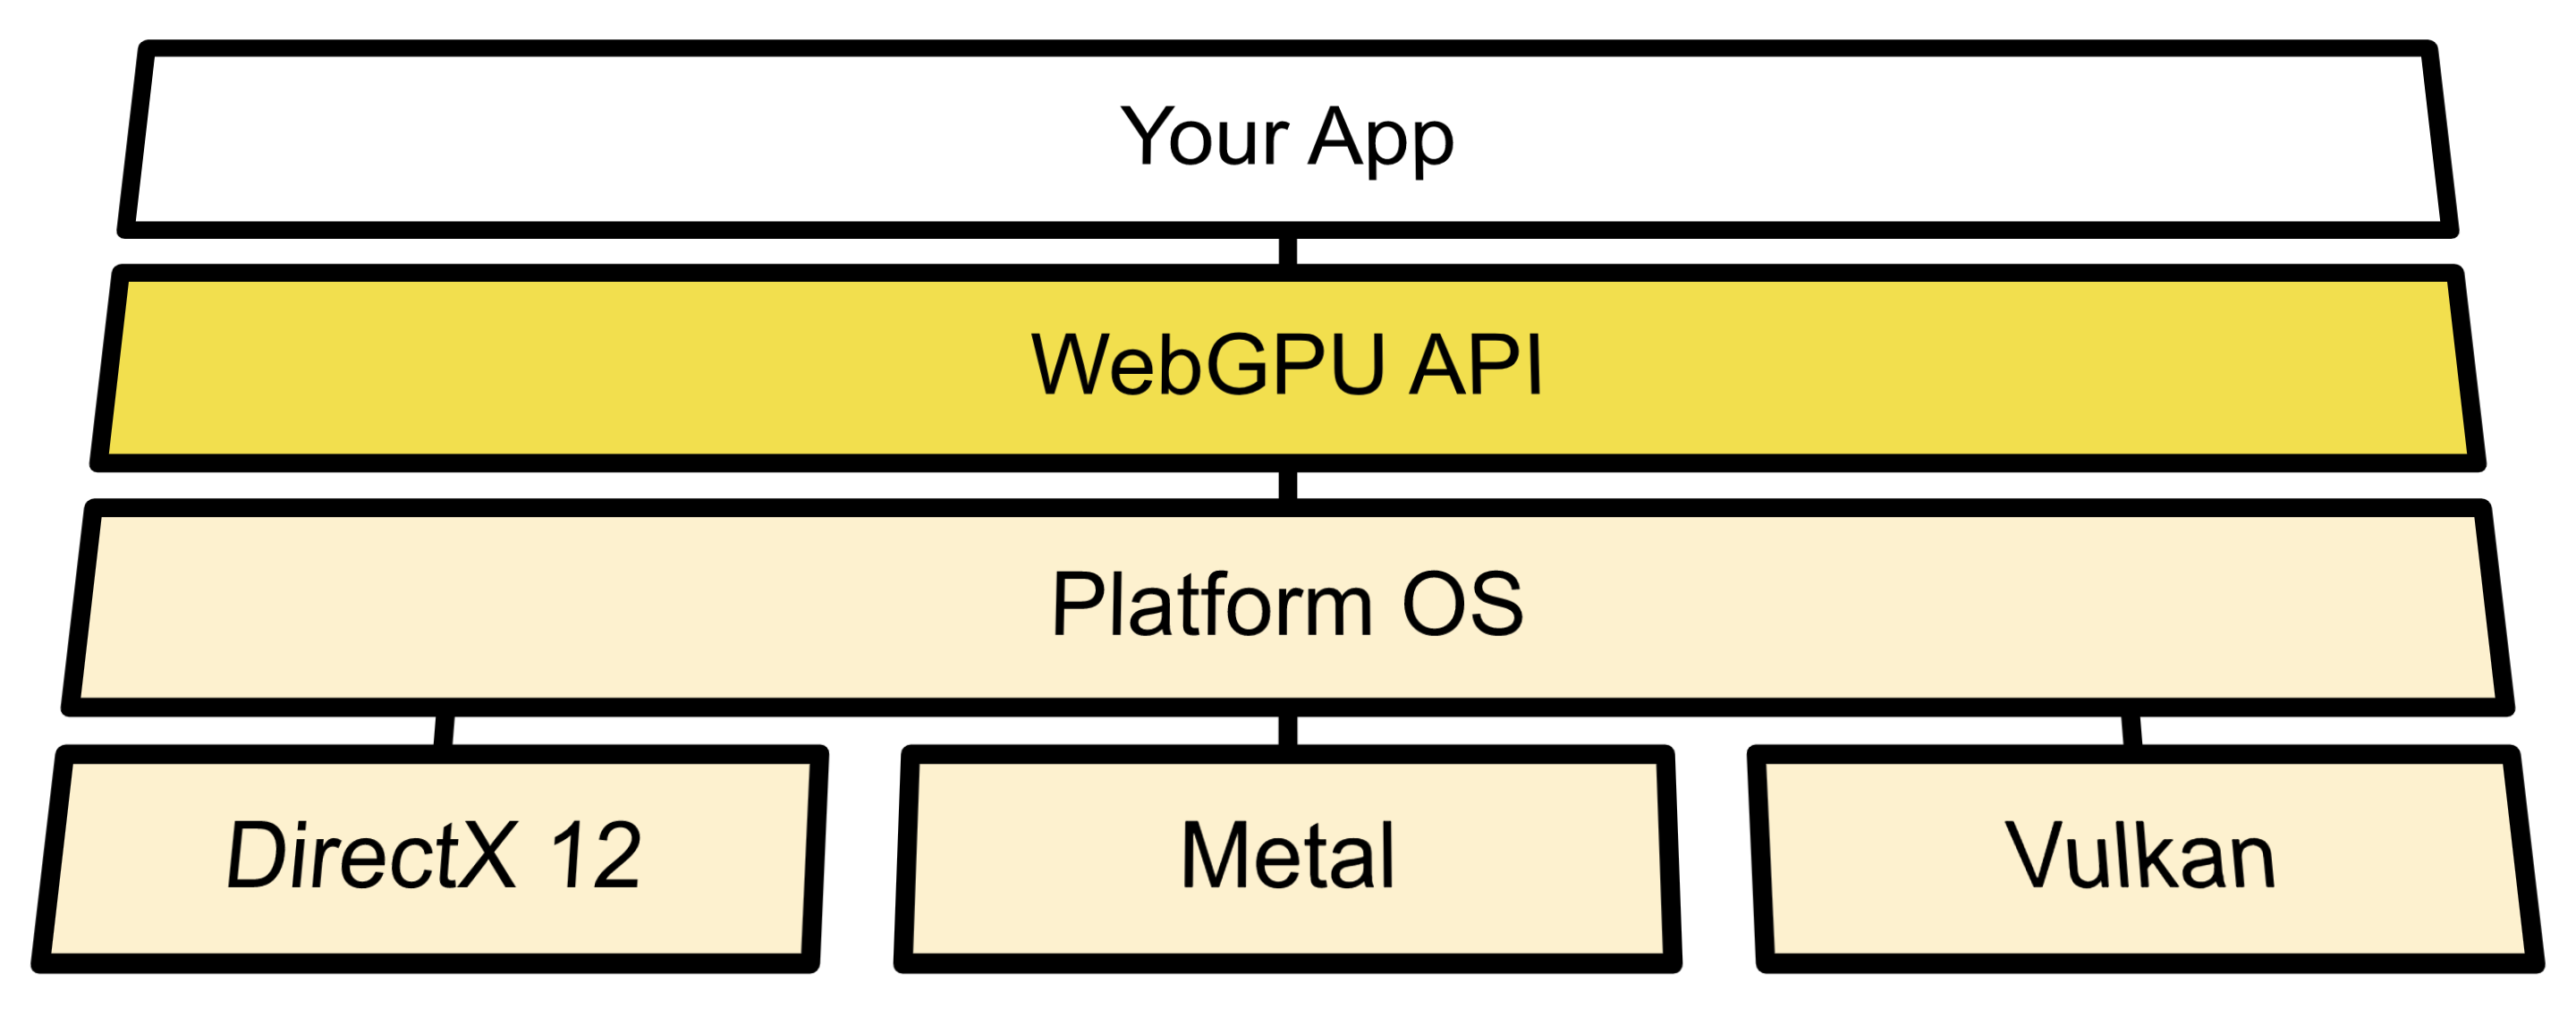 Architecture diagram showing WebGPUs connection between OS APIs and Direct3D 12, Metal, and Vulkan.